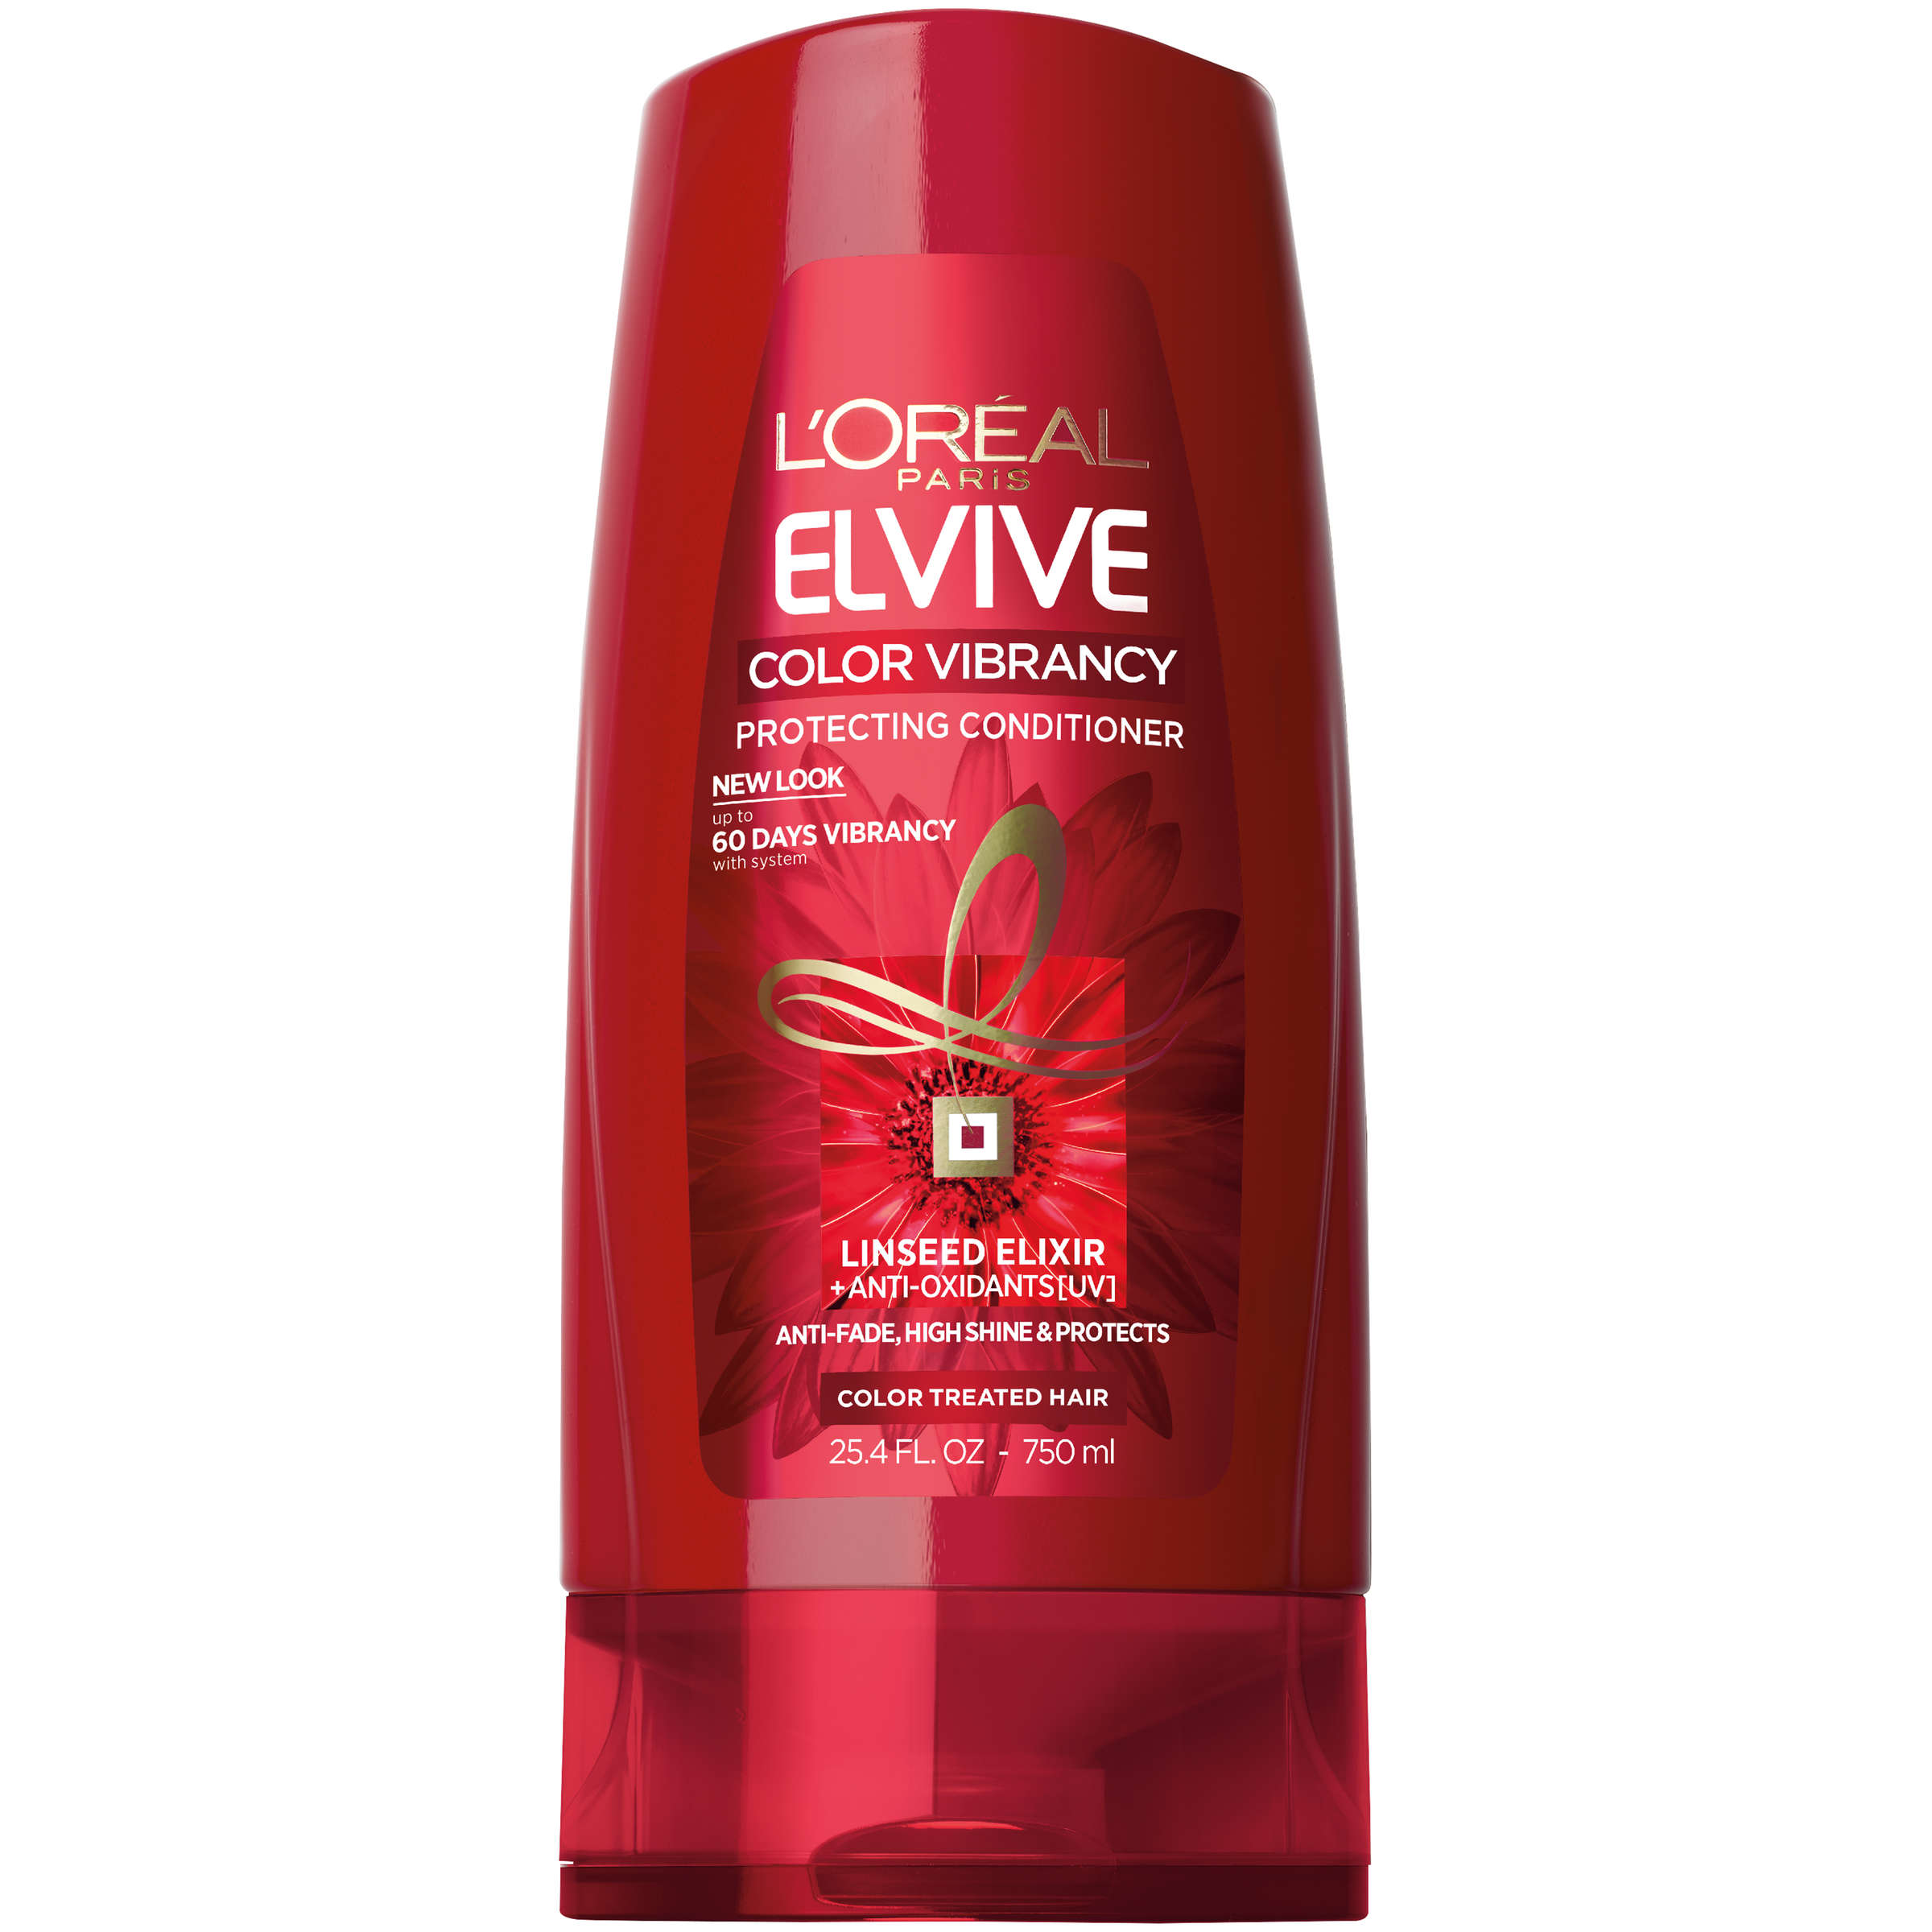 L'Oreal Paris Elvive Color Vibrancy Nourishing Shampoo 25.4 FL OZ